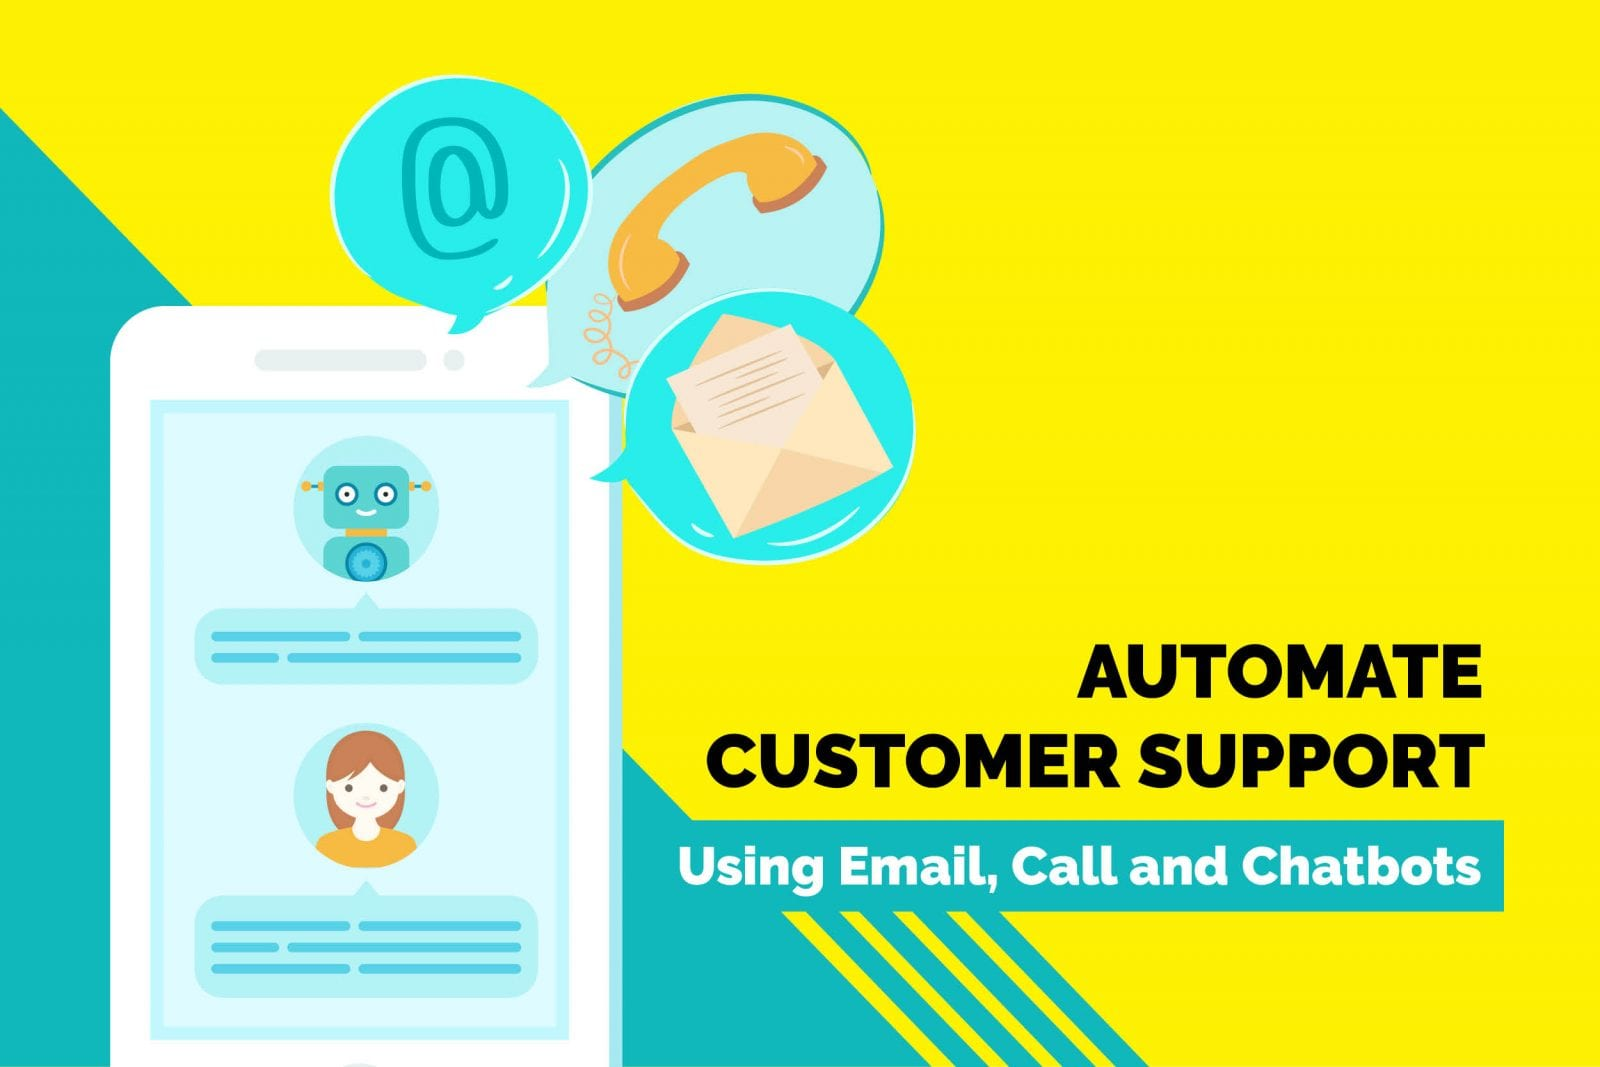 How to Automate Customer Support Using Emails, Calls and Chatbots?